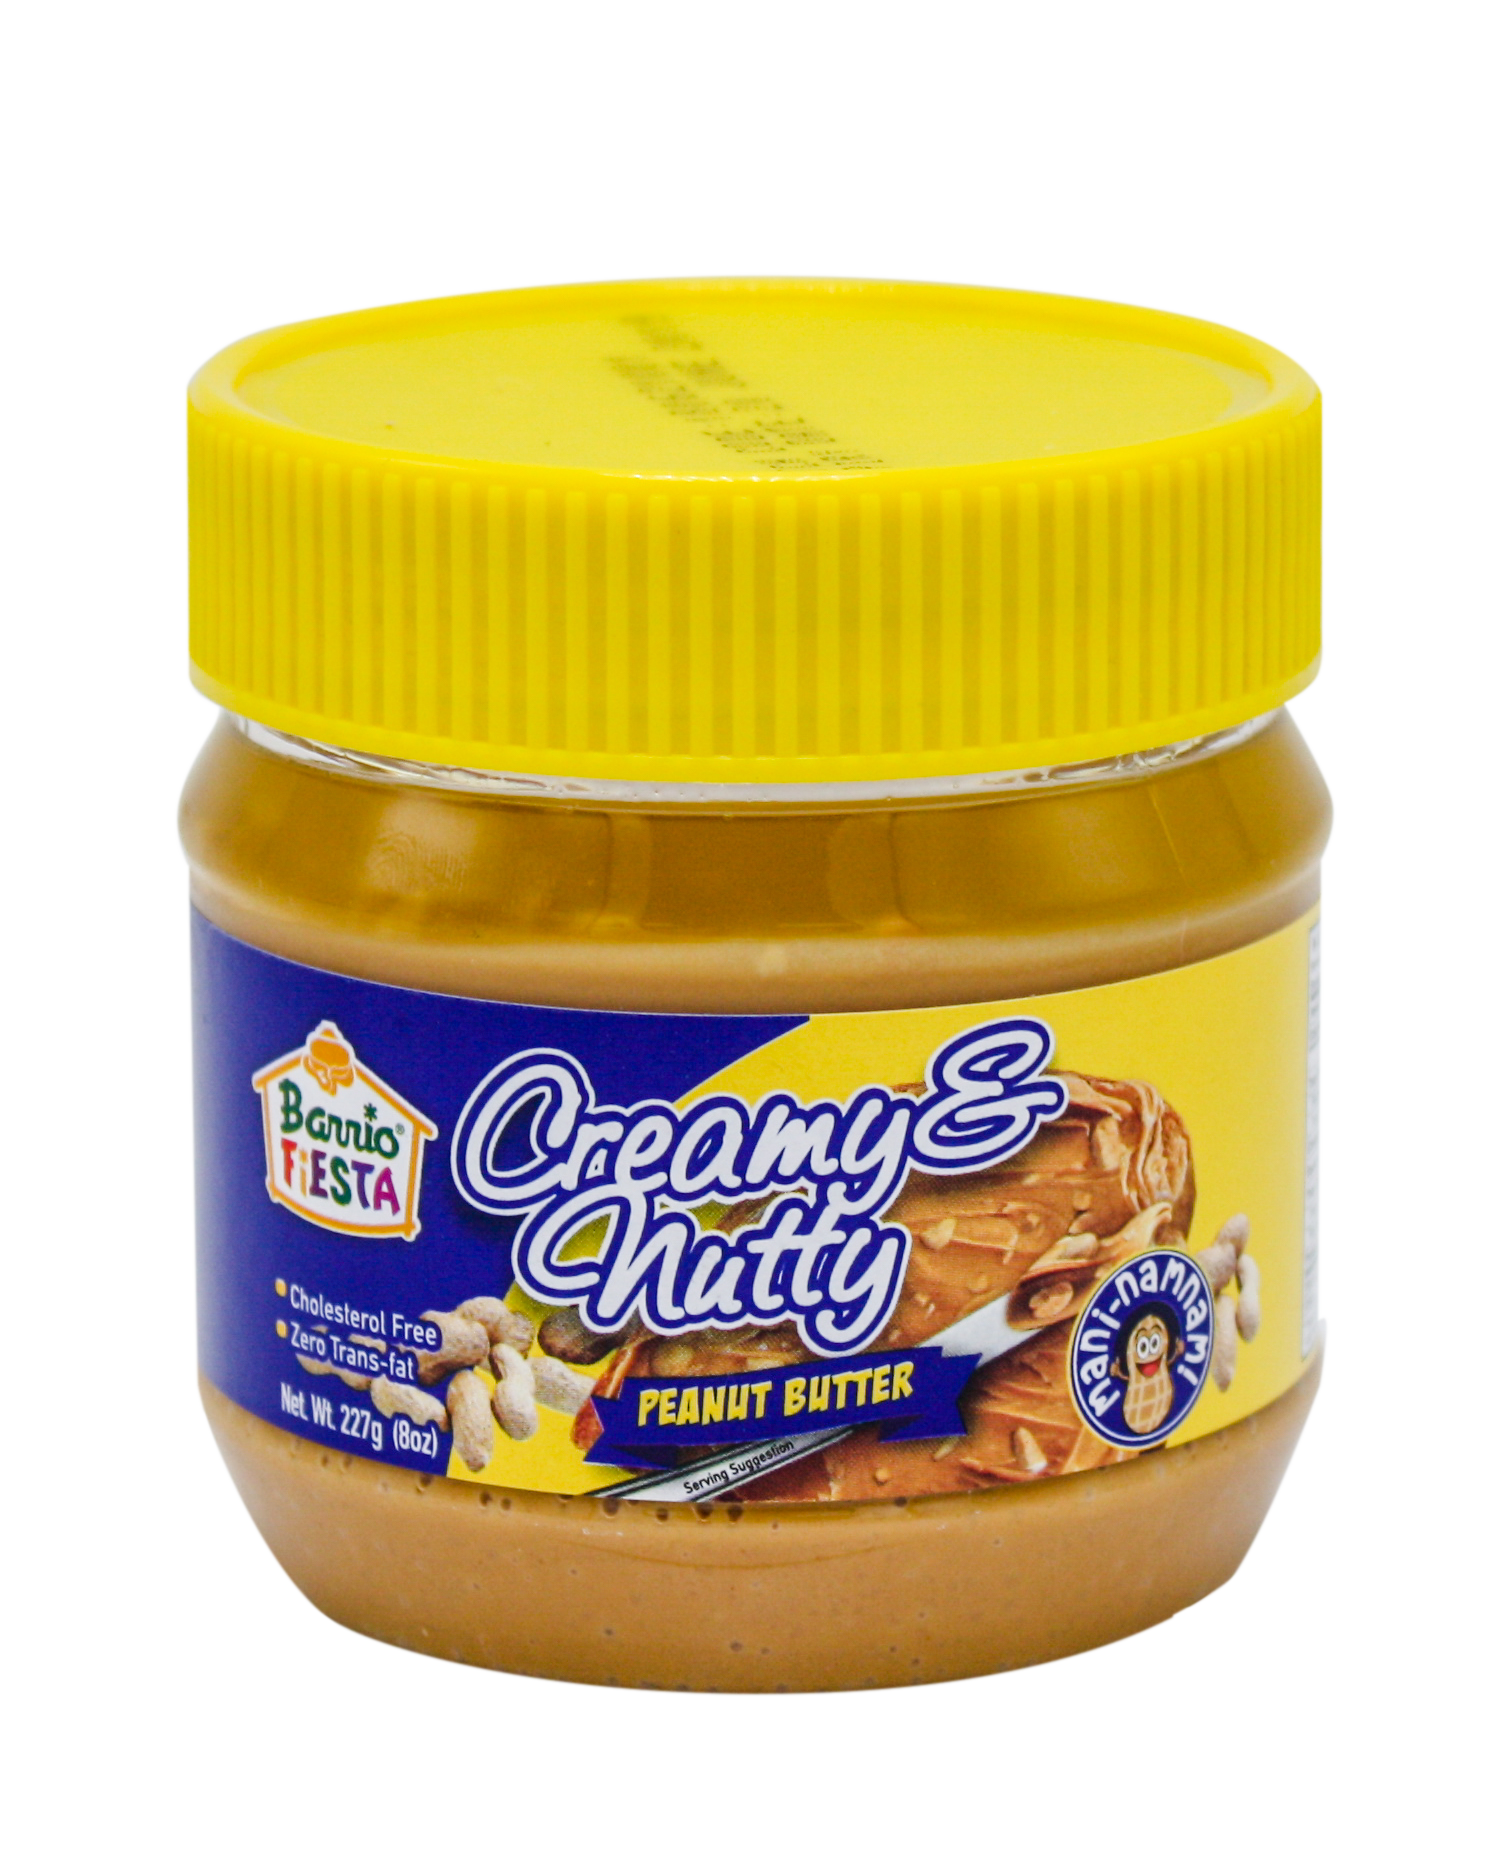 creamy and nutty peanut butter